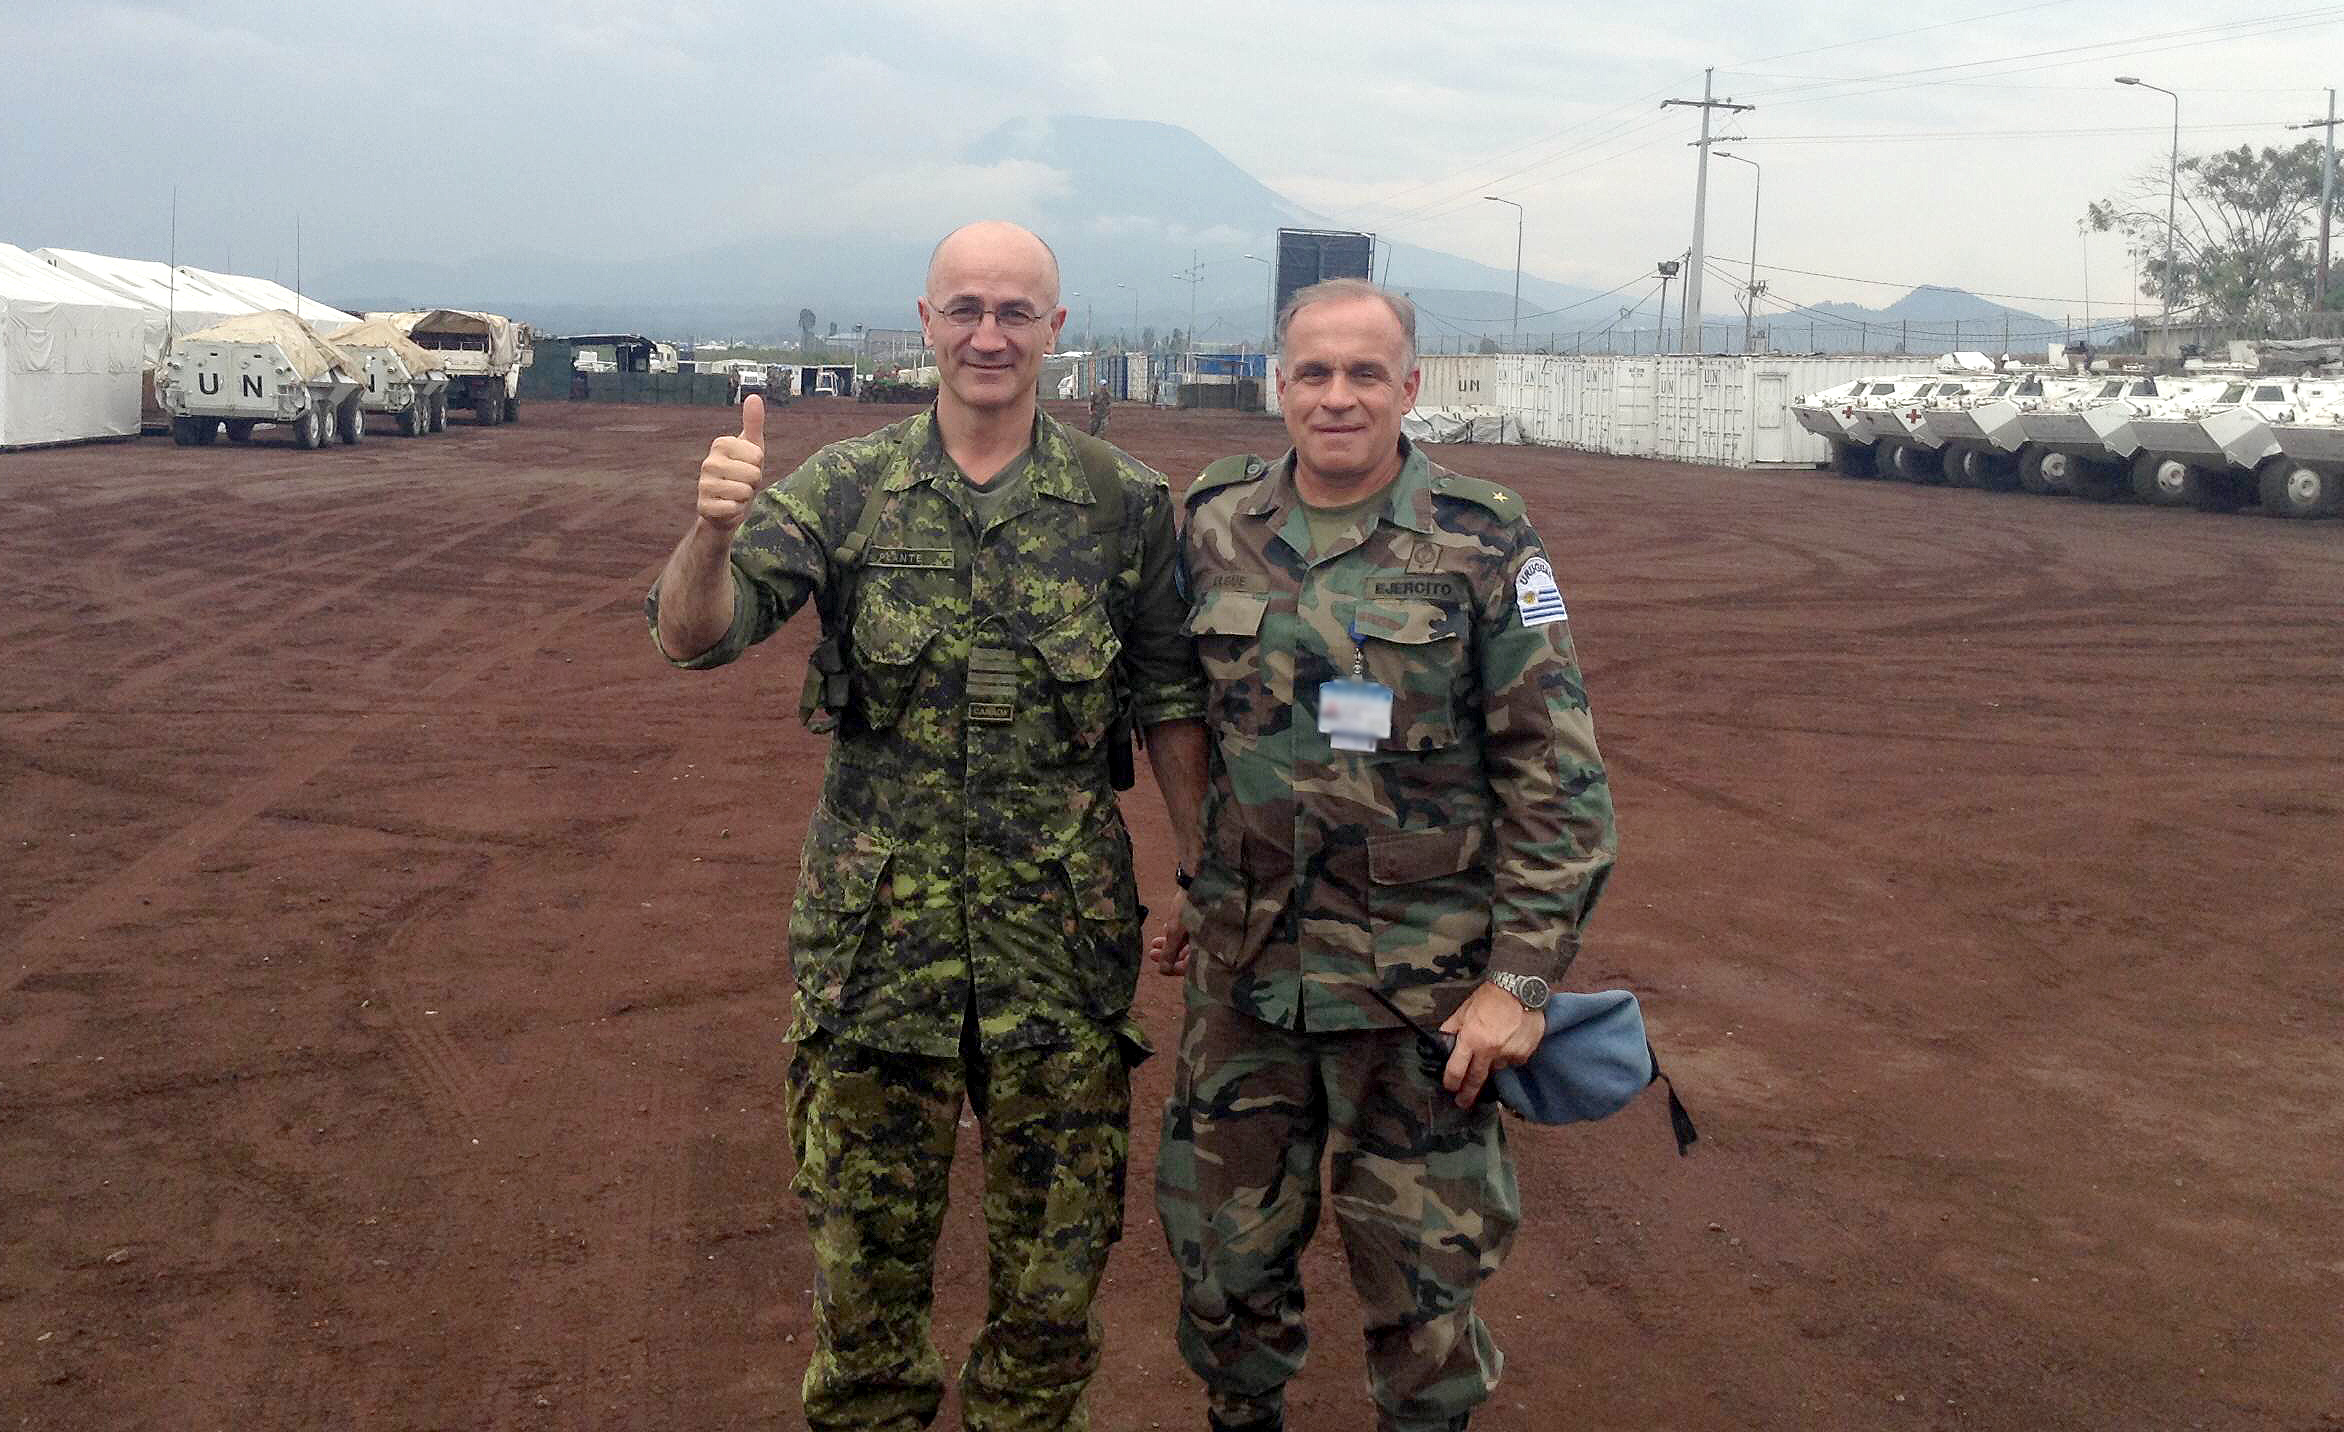 Two middle-aged men in camouflage army uniforms stand in an expansive parking area filled with white tents and white United Nations amoured personnel carriers.